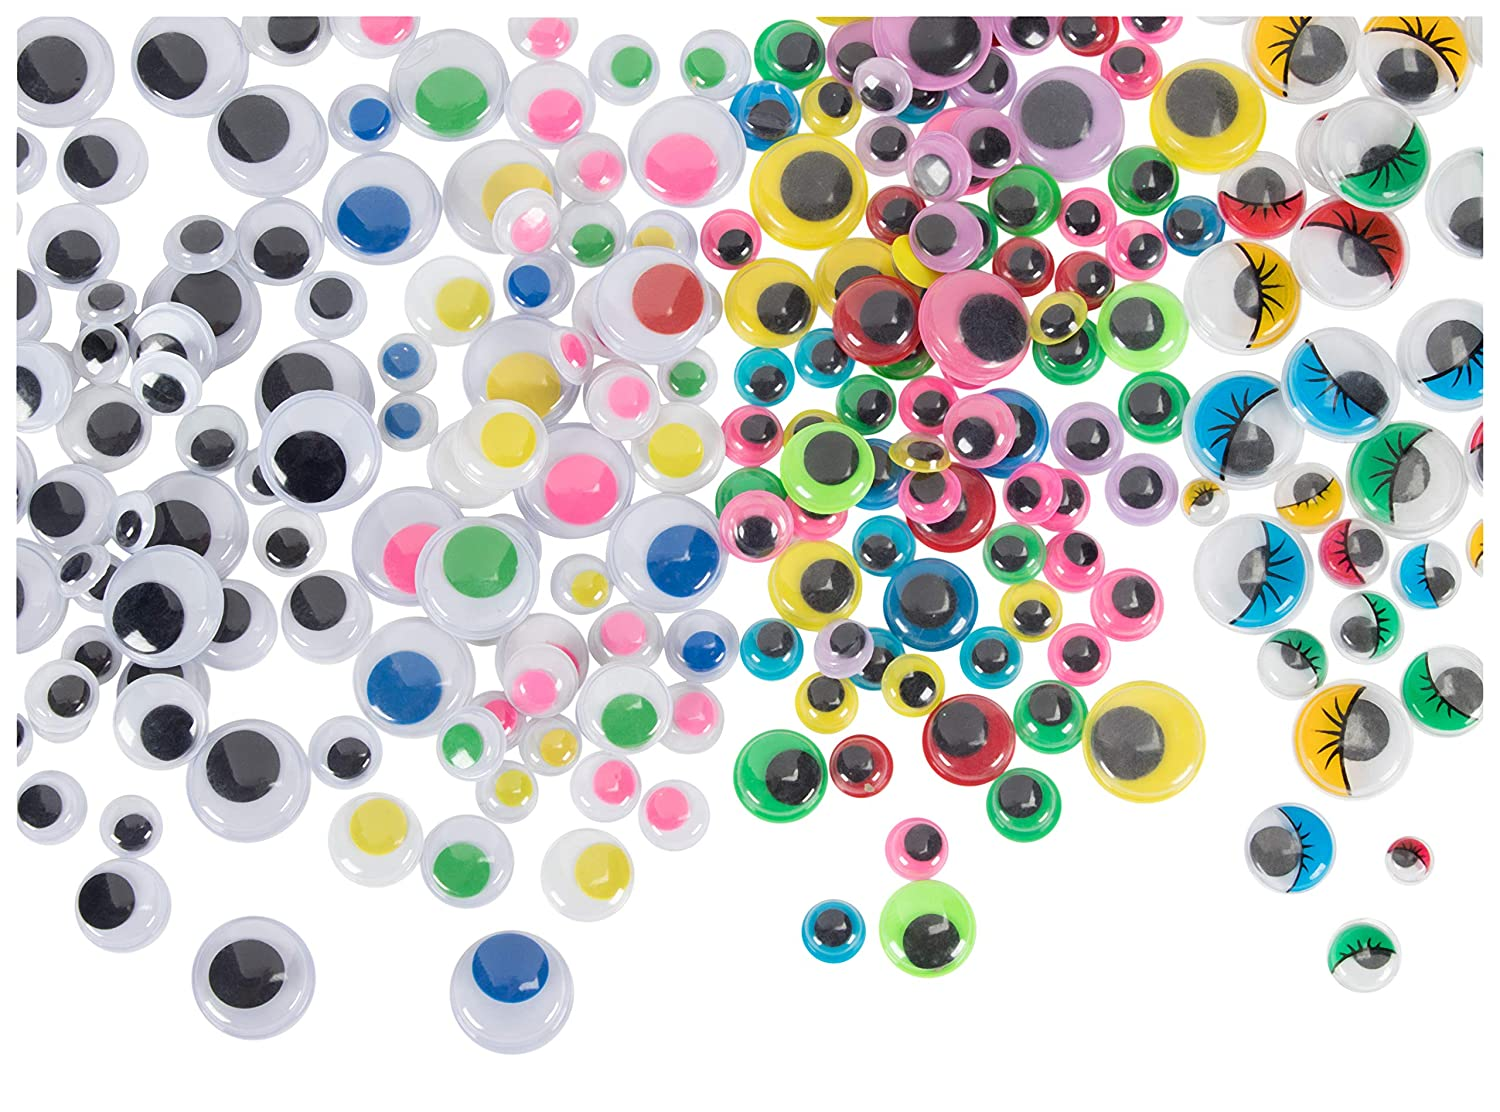 Googly Eyes - 500-Pack Wiggle Eyes, Moving Eyes, Art Craft Supplies, for DIY, School Projects, Toy Accessories, and Scrapbooking, Doll Making, Decoration, 4 Assorted Designs, 3 Assorted Sizes Juvale